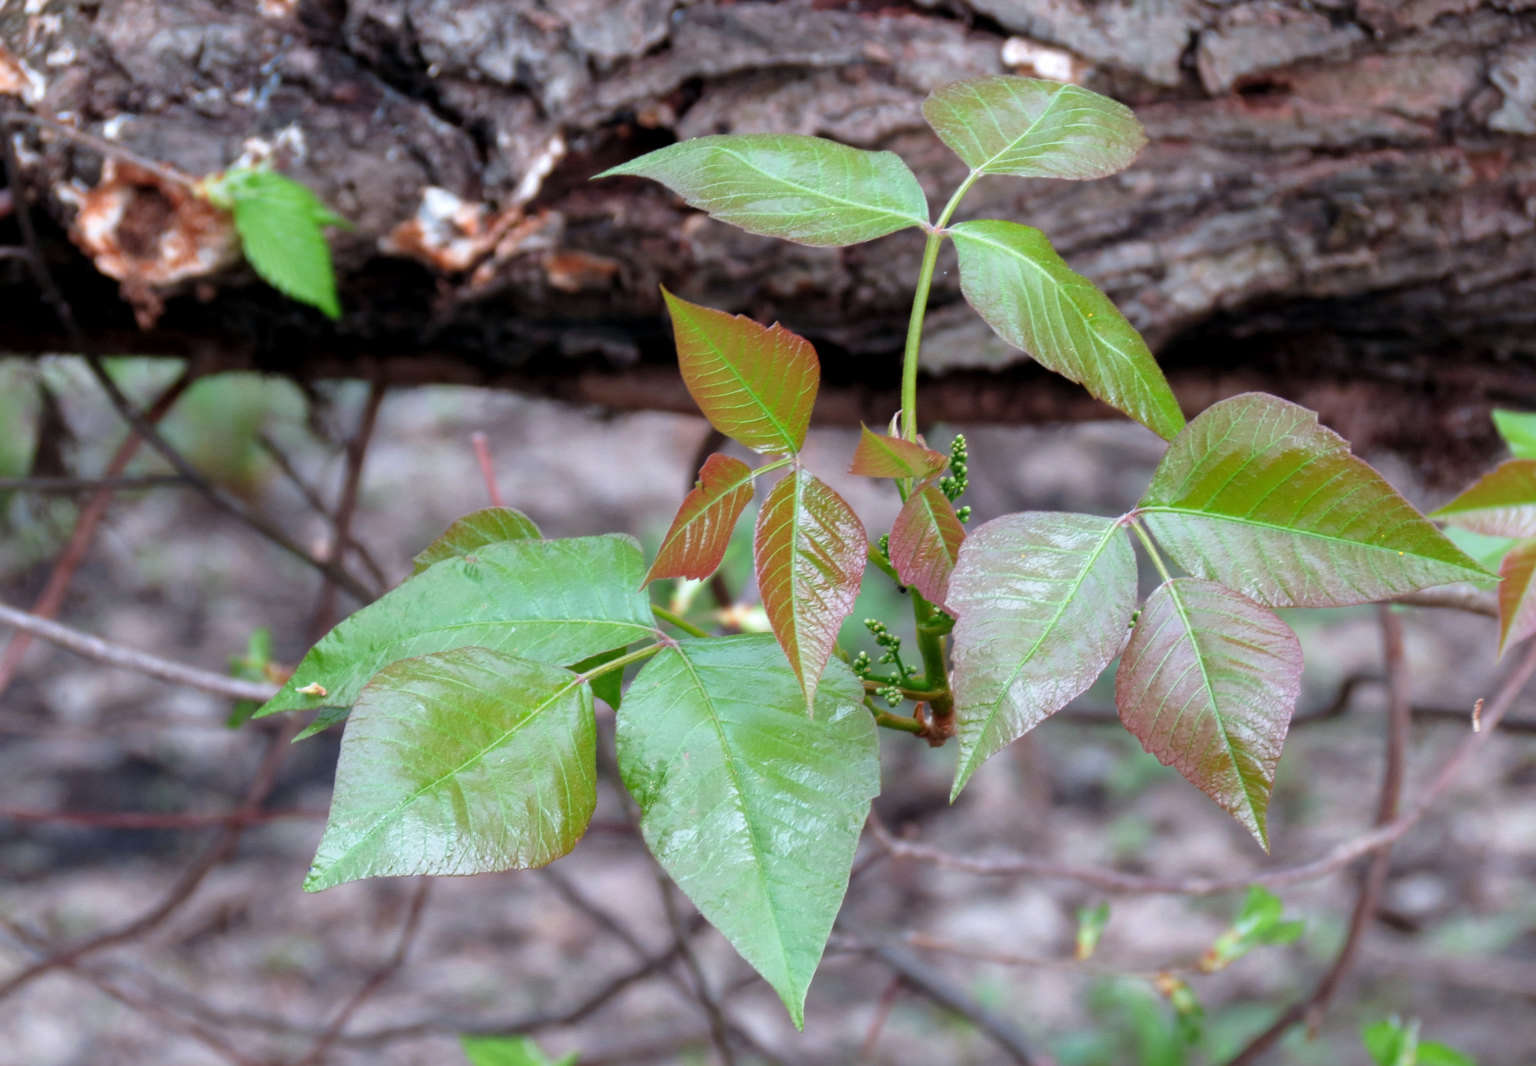 """Poison ivy was making enemies as early as the 17th century. Upon discovering it in the New World, Captain John Smith noted in 1623, """"The poysoned weed is ..."""